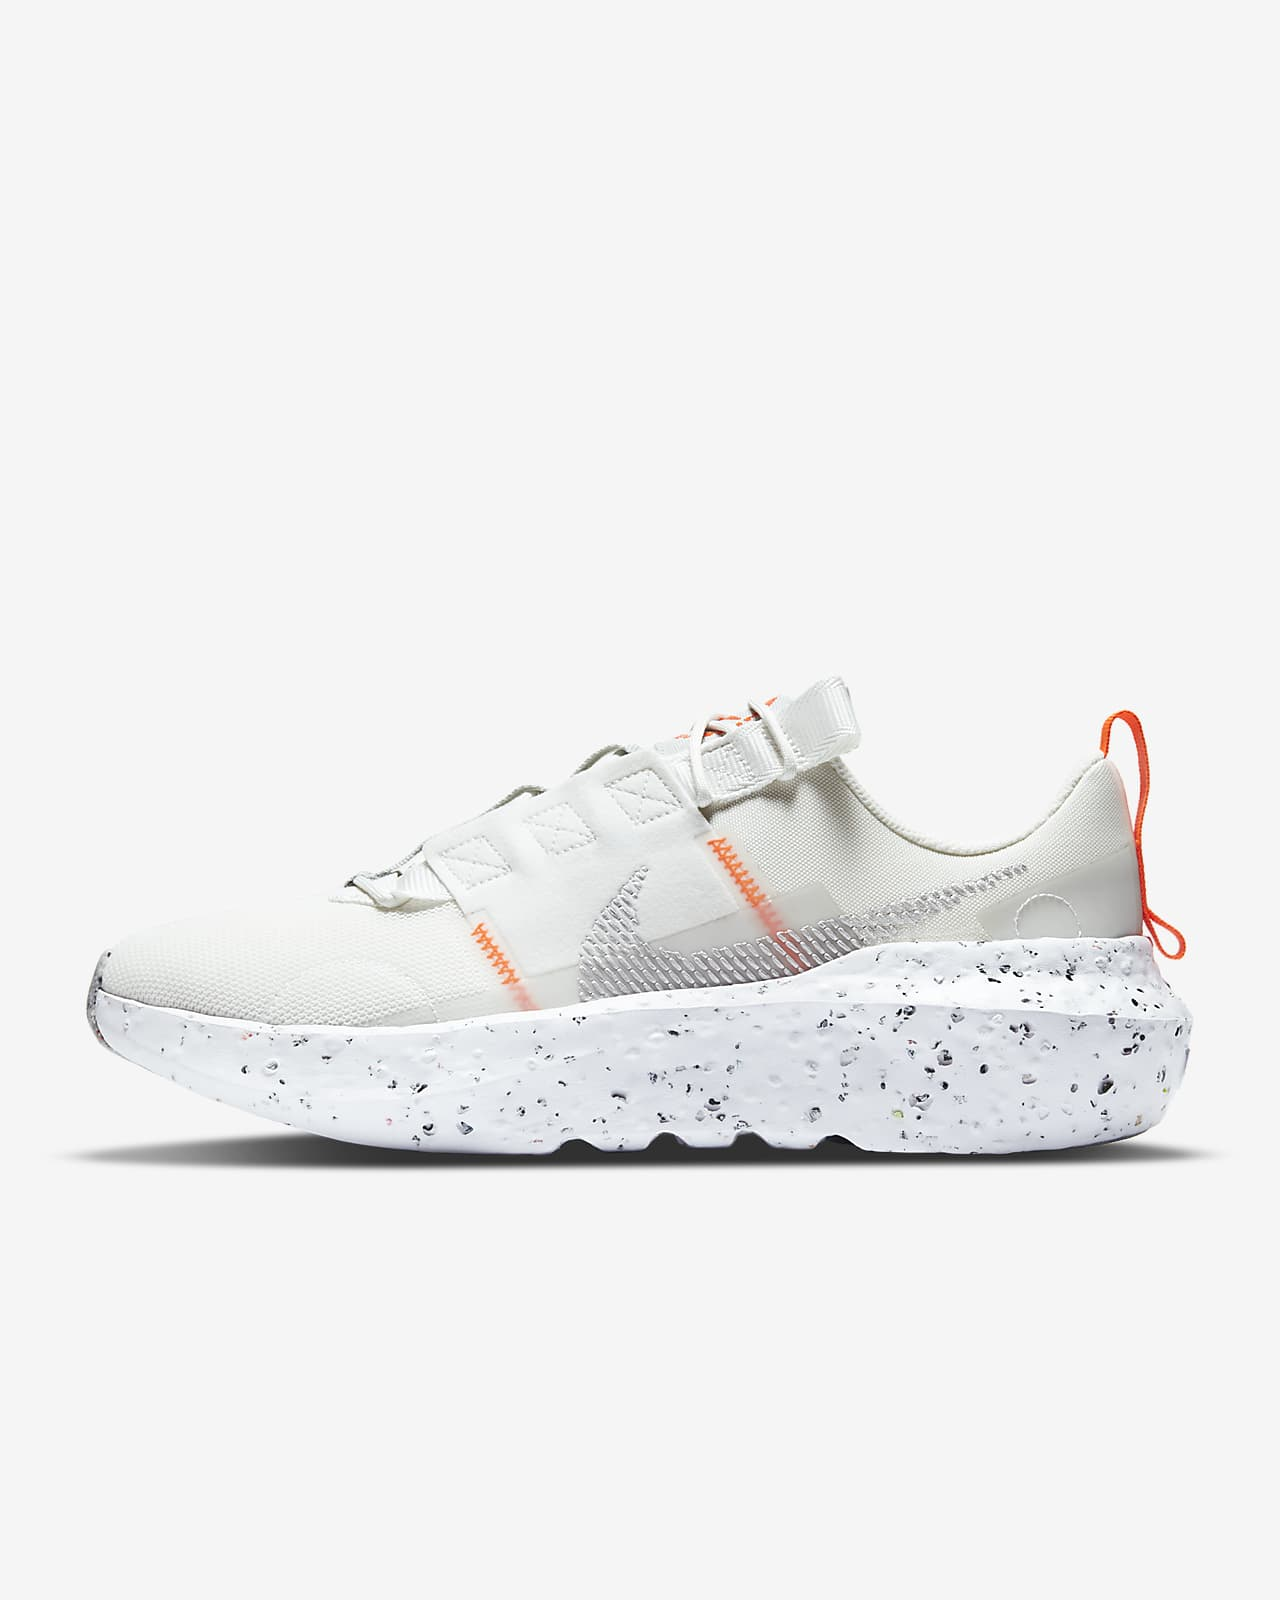 Chaussure Nike Crater Impact pour Homme